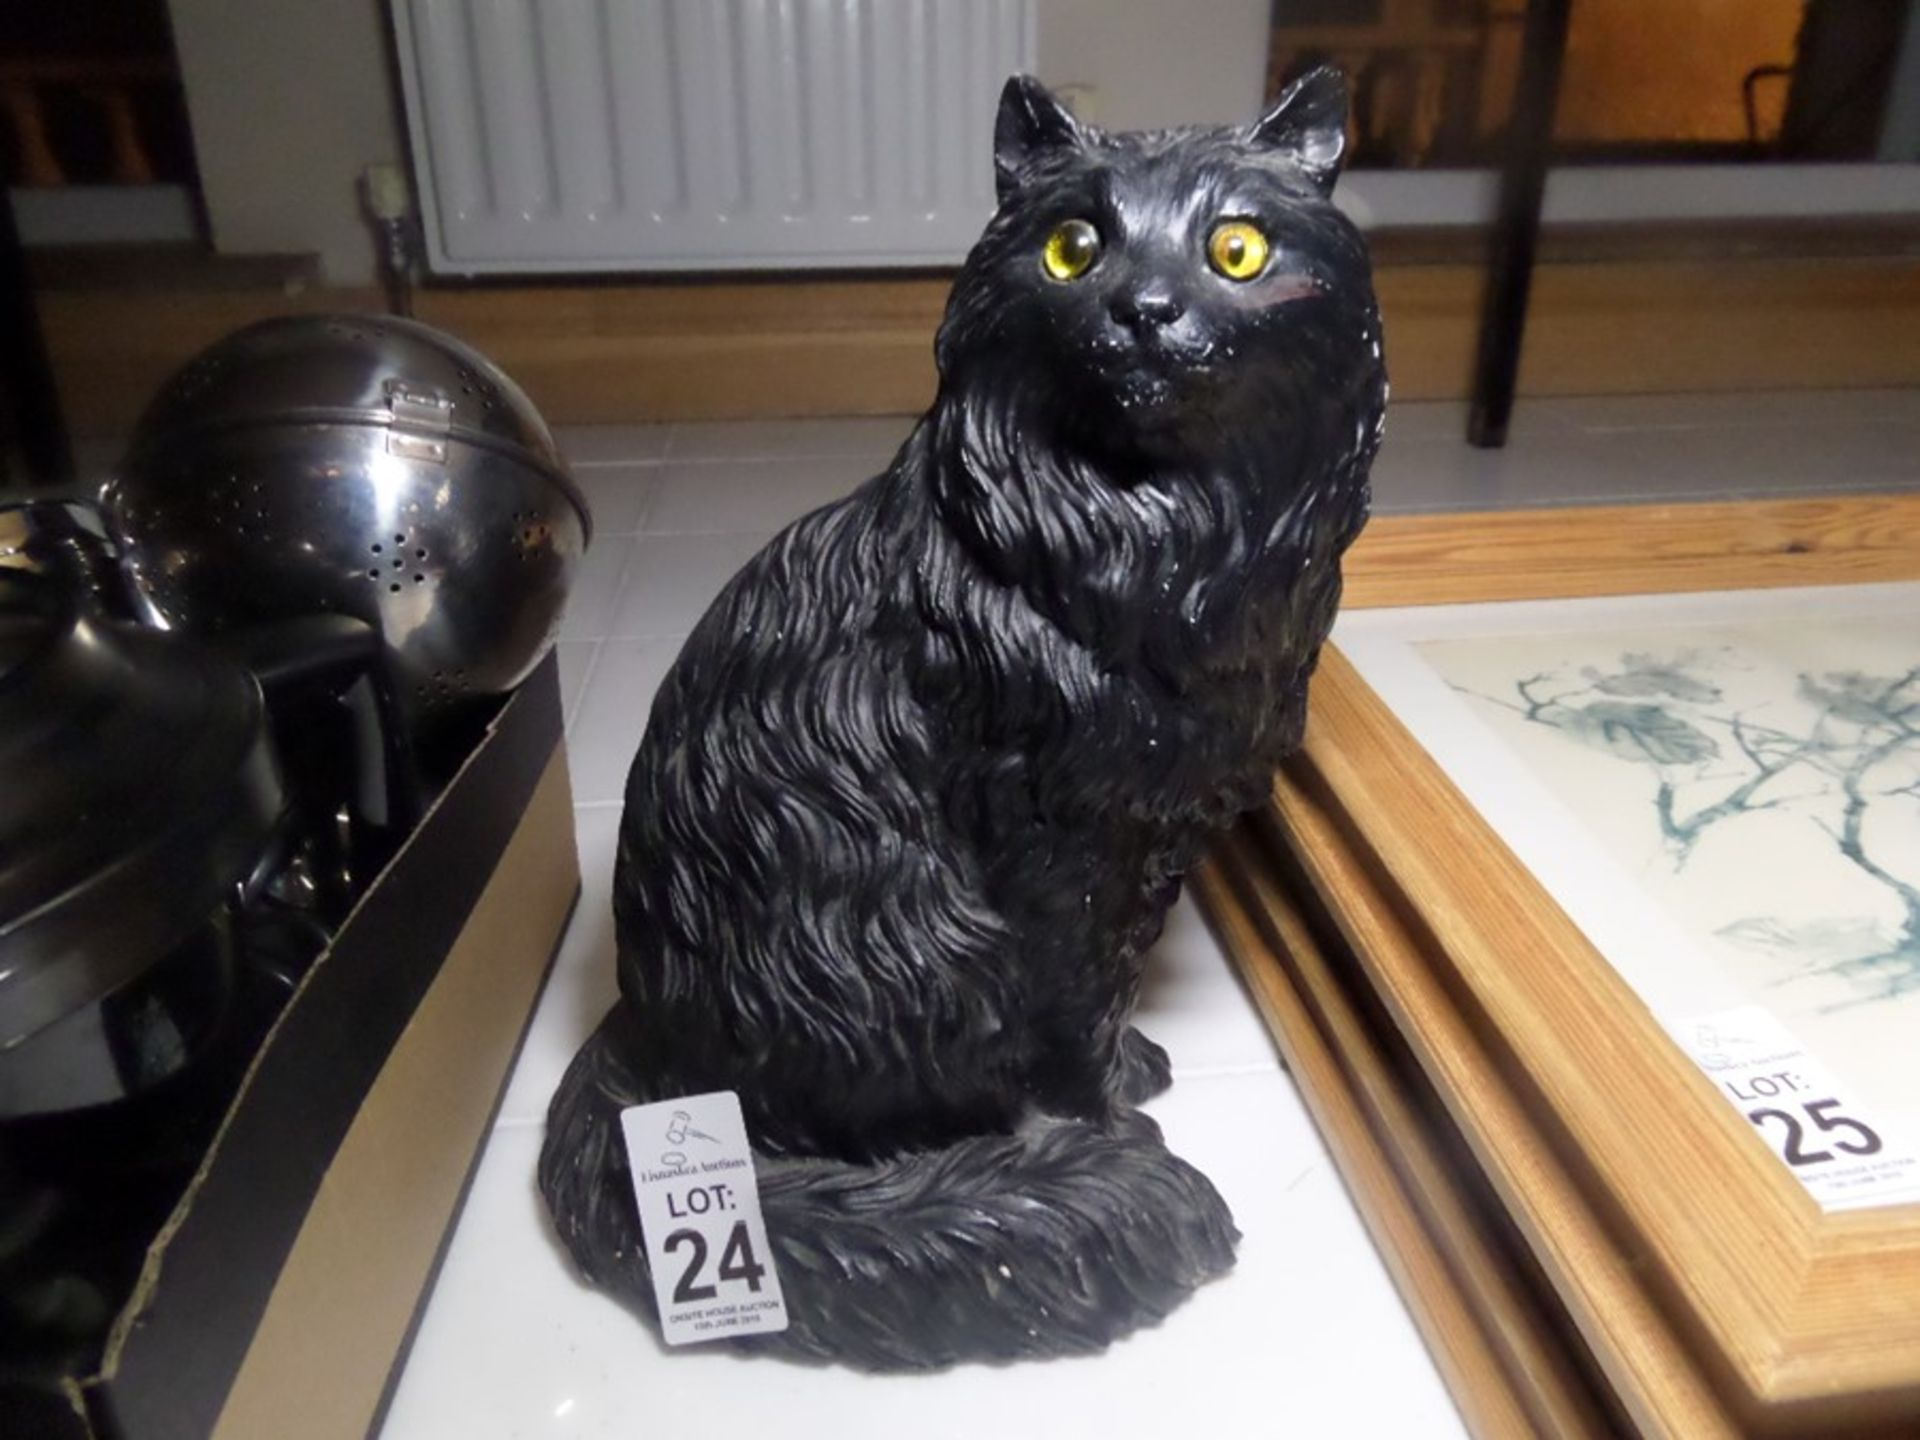 Lot 24 - BLACK CAT ORNAMENT